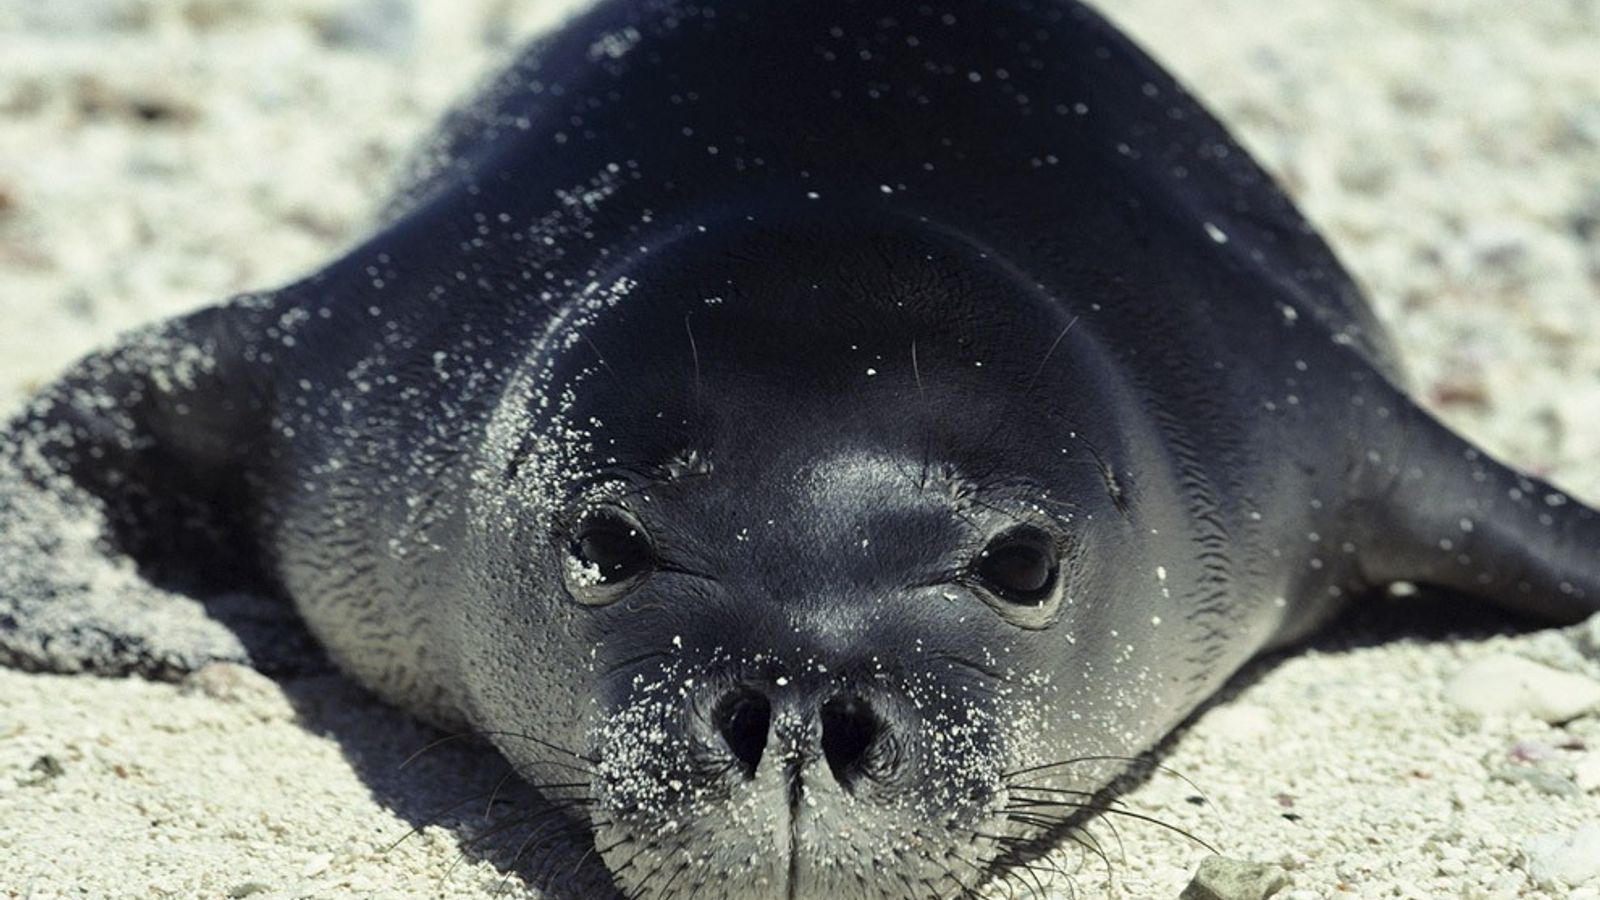 While most seals make their homes in colder climates, the Hawaiian monk seals prefer the warm, ...